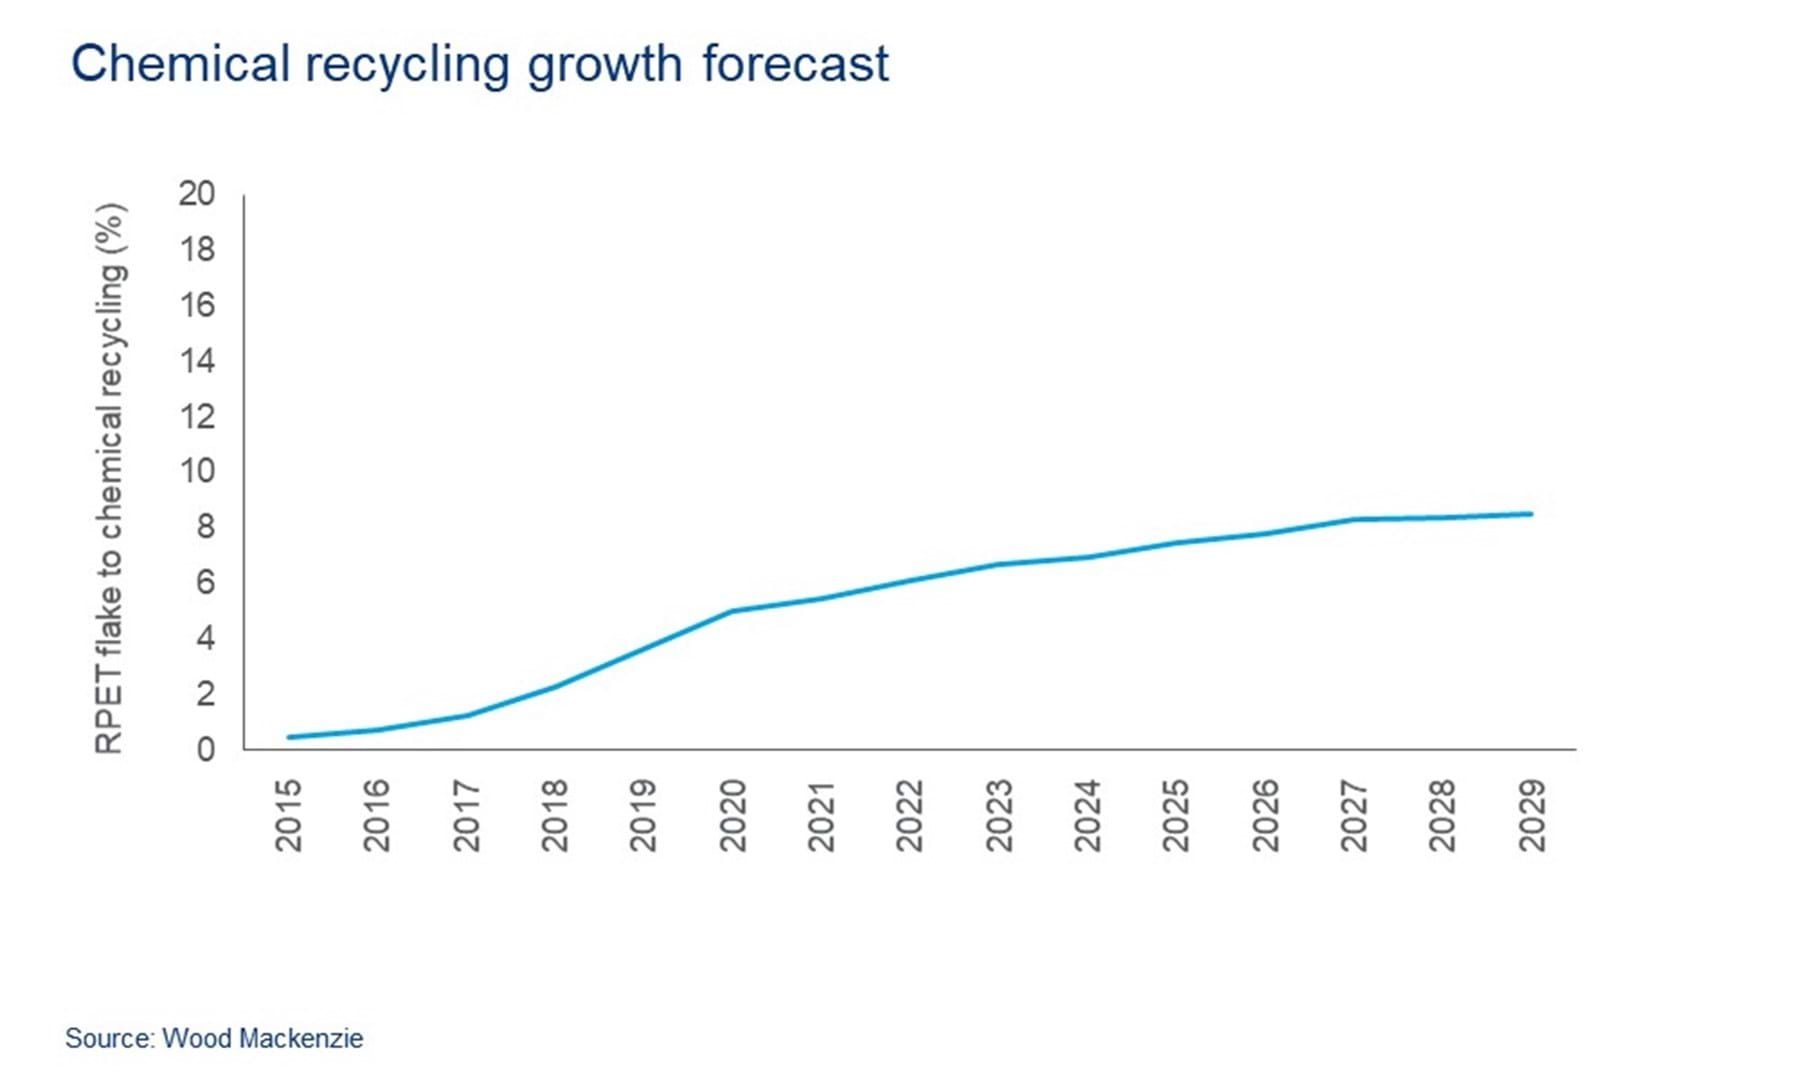 New recycling technologies can help solve the plastic waste